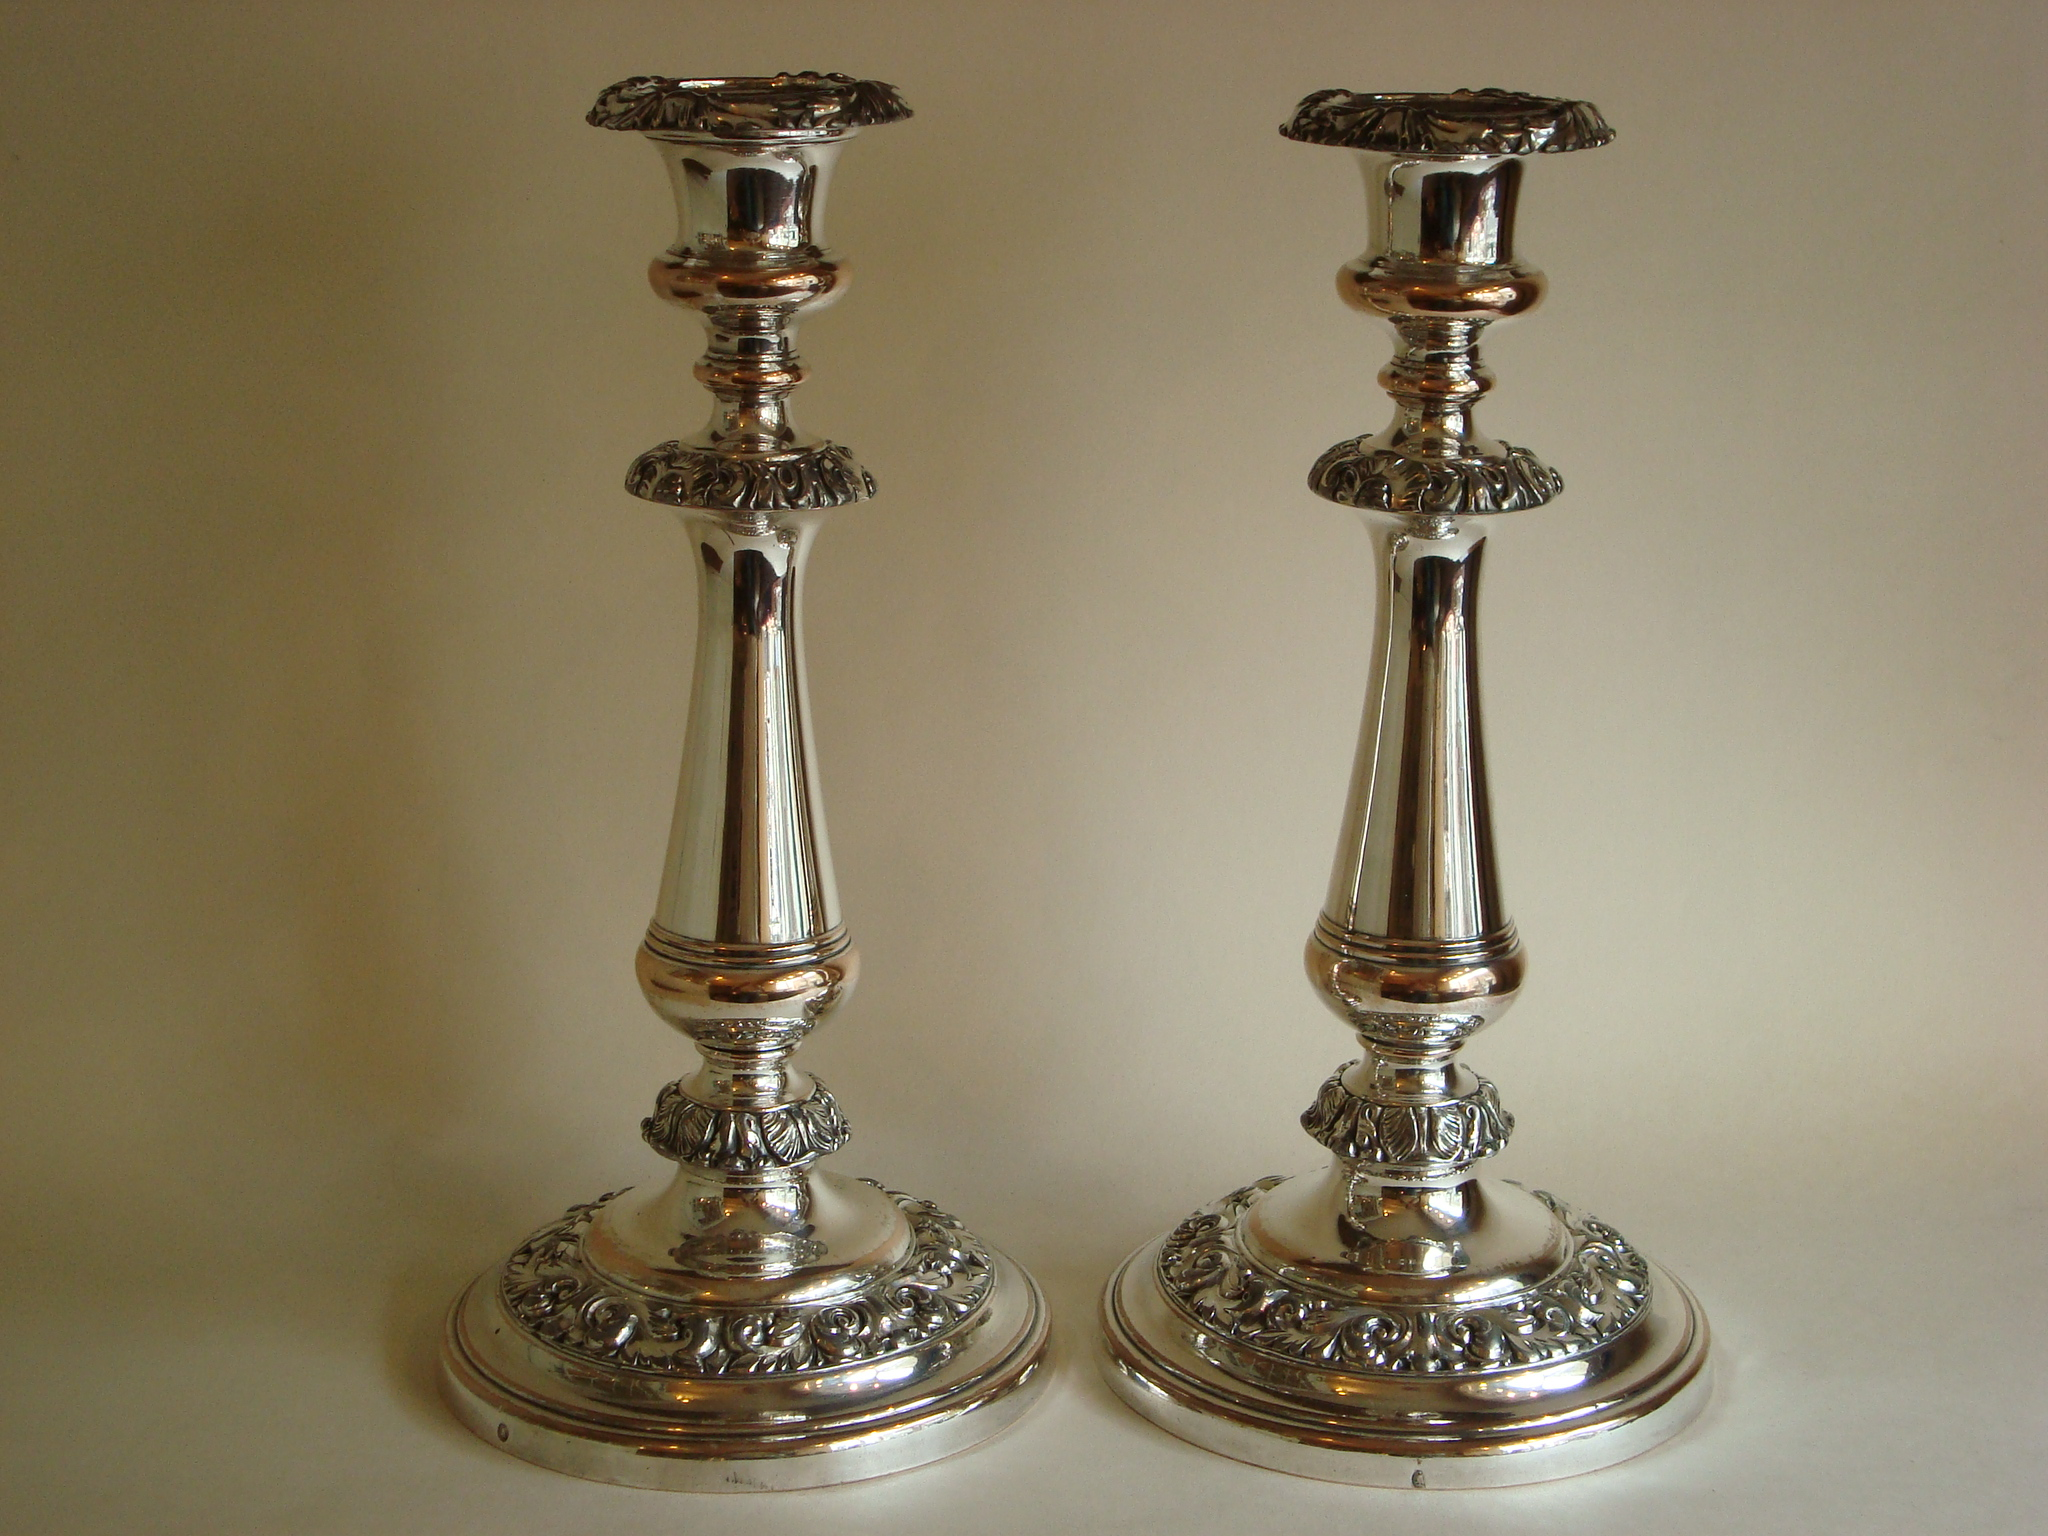 Old Sheffield Plate Candlesticks SOLD Henry Willis